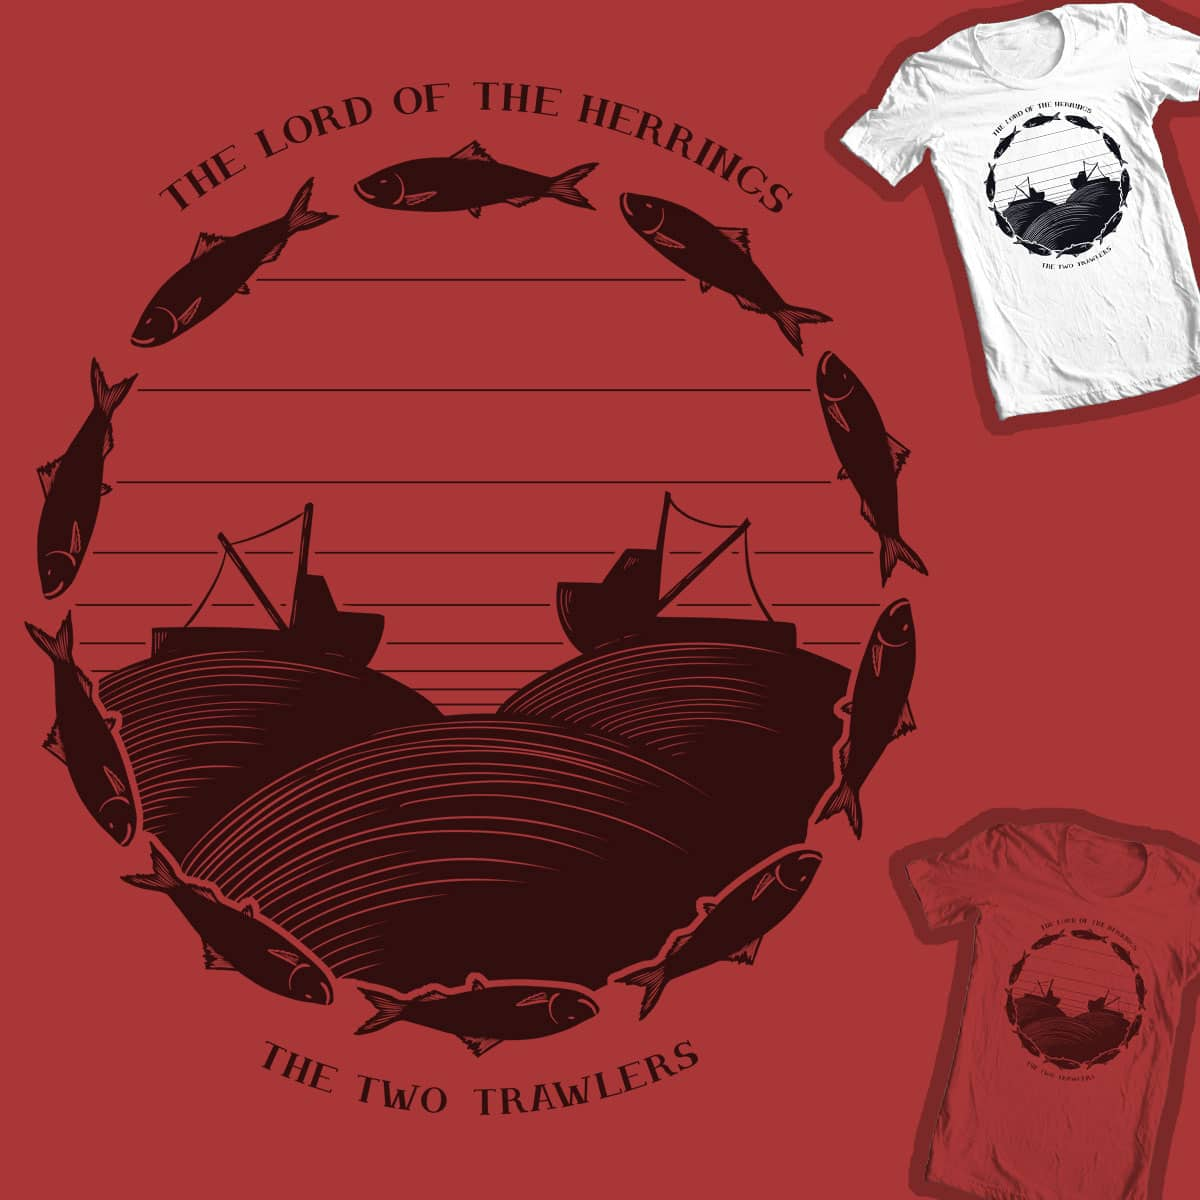 The Lord of the Herrings: Book 2 by P0ckets on Threadless